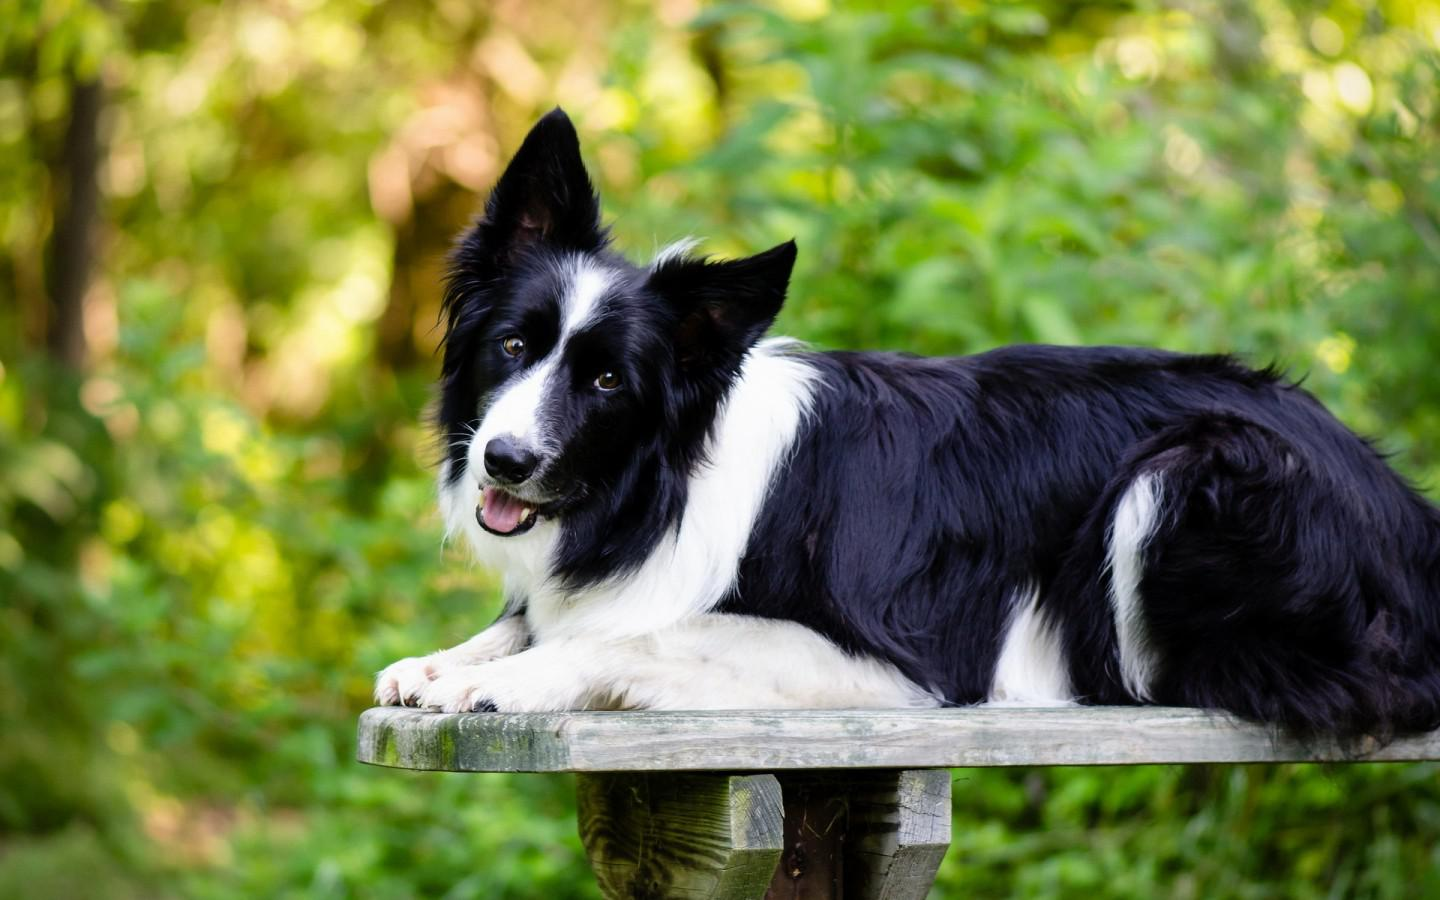 Dog Breeds Like Collie